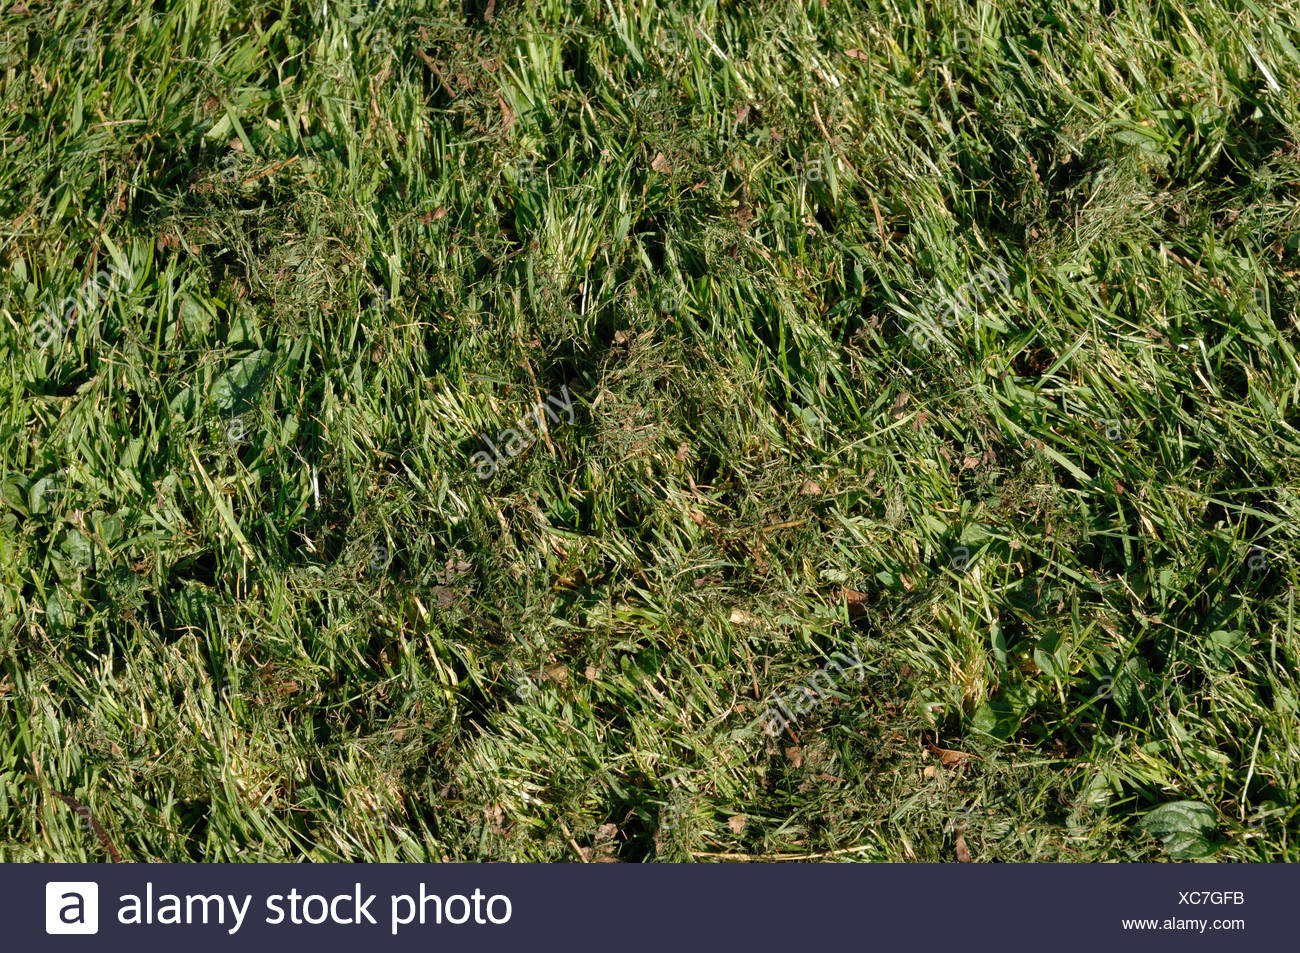 Rough lawn with fine much after mowing with a rotary mulching mower - Stock Image